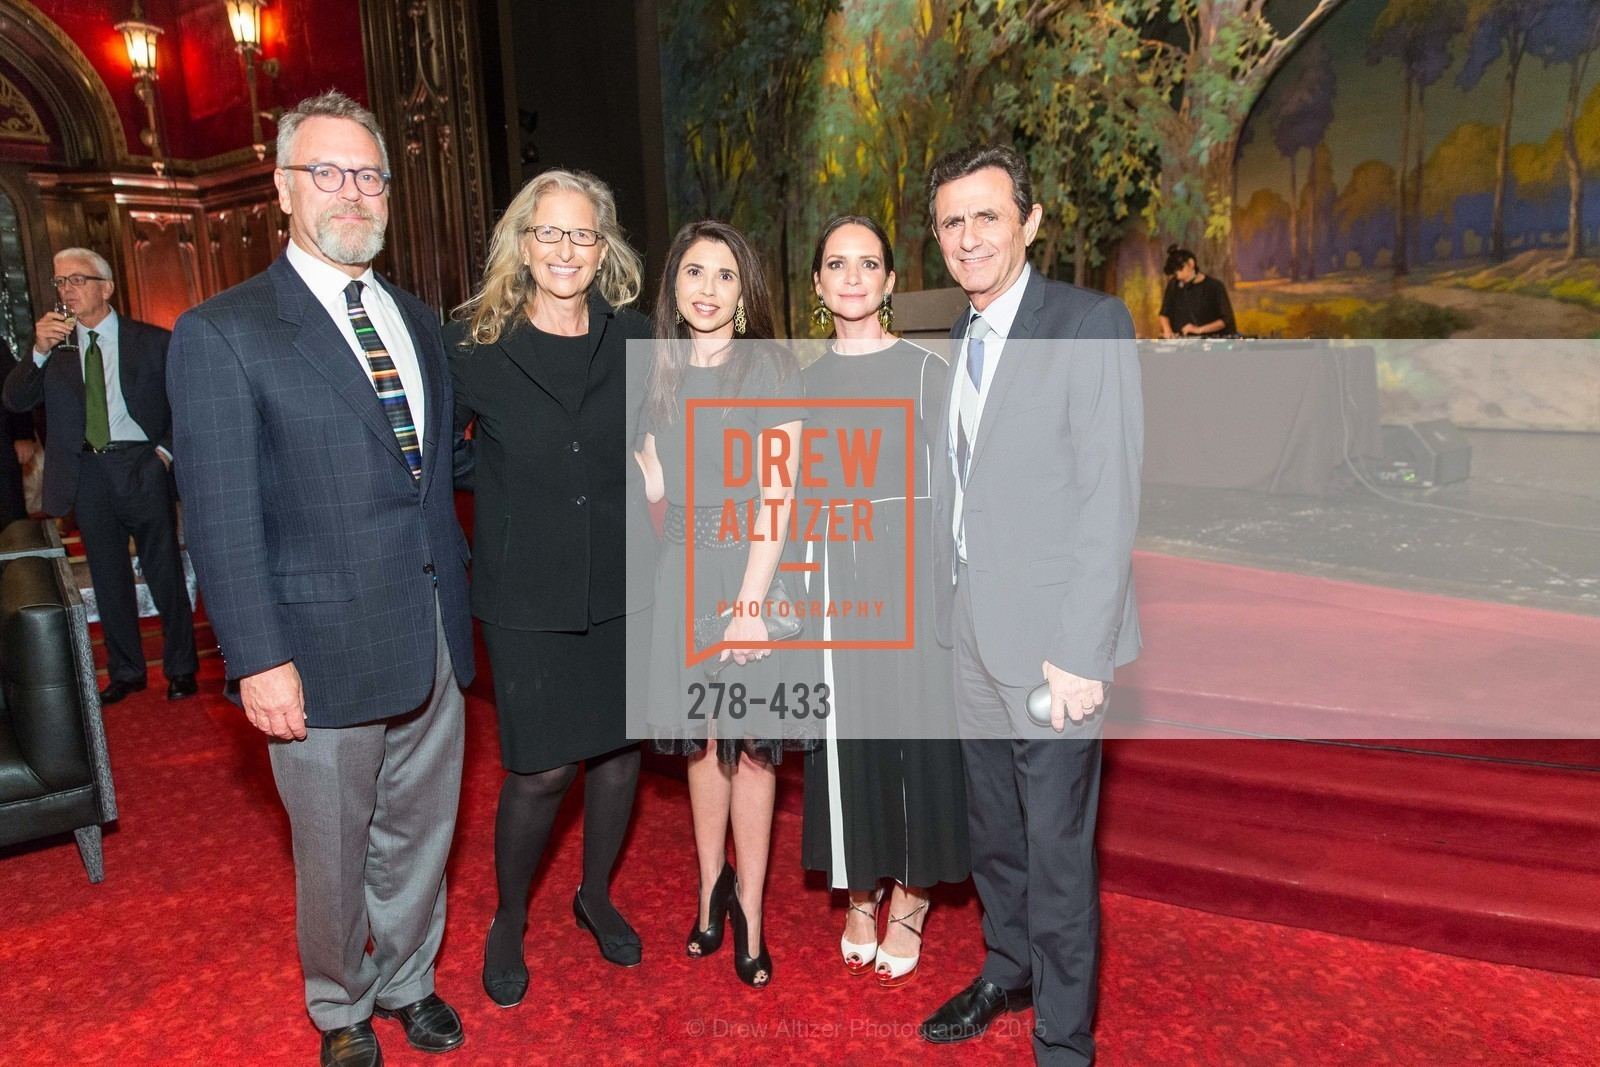 Nion McEvoy, Annie Leibovitz, Candace Cavanaugh, Courtney Dallaire, Neal Benezra, SFMOMA Contemporary Vision Award, Regency Ballroom. 1300 Van Ness, November 3rd, 2015,Drew Altizer, Drew Altizer Photography, full-service agency, private events, San Francisco photographer, photographer california